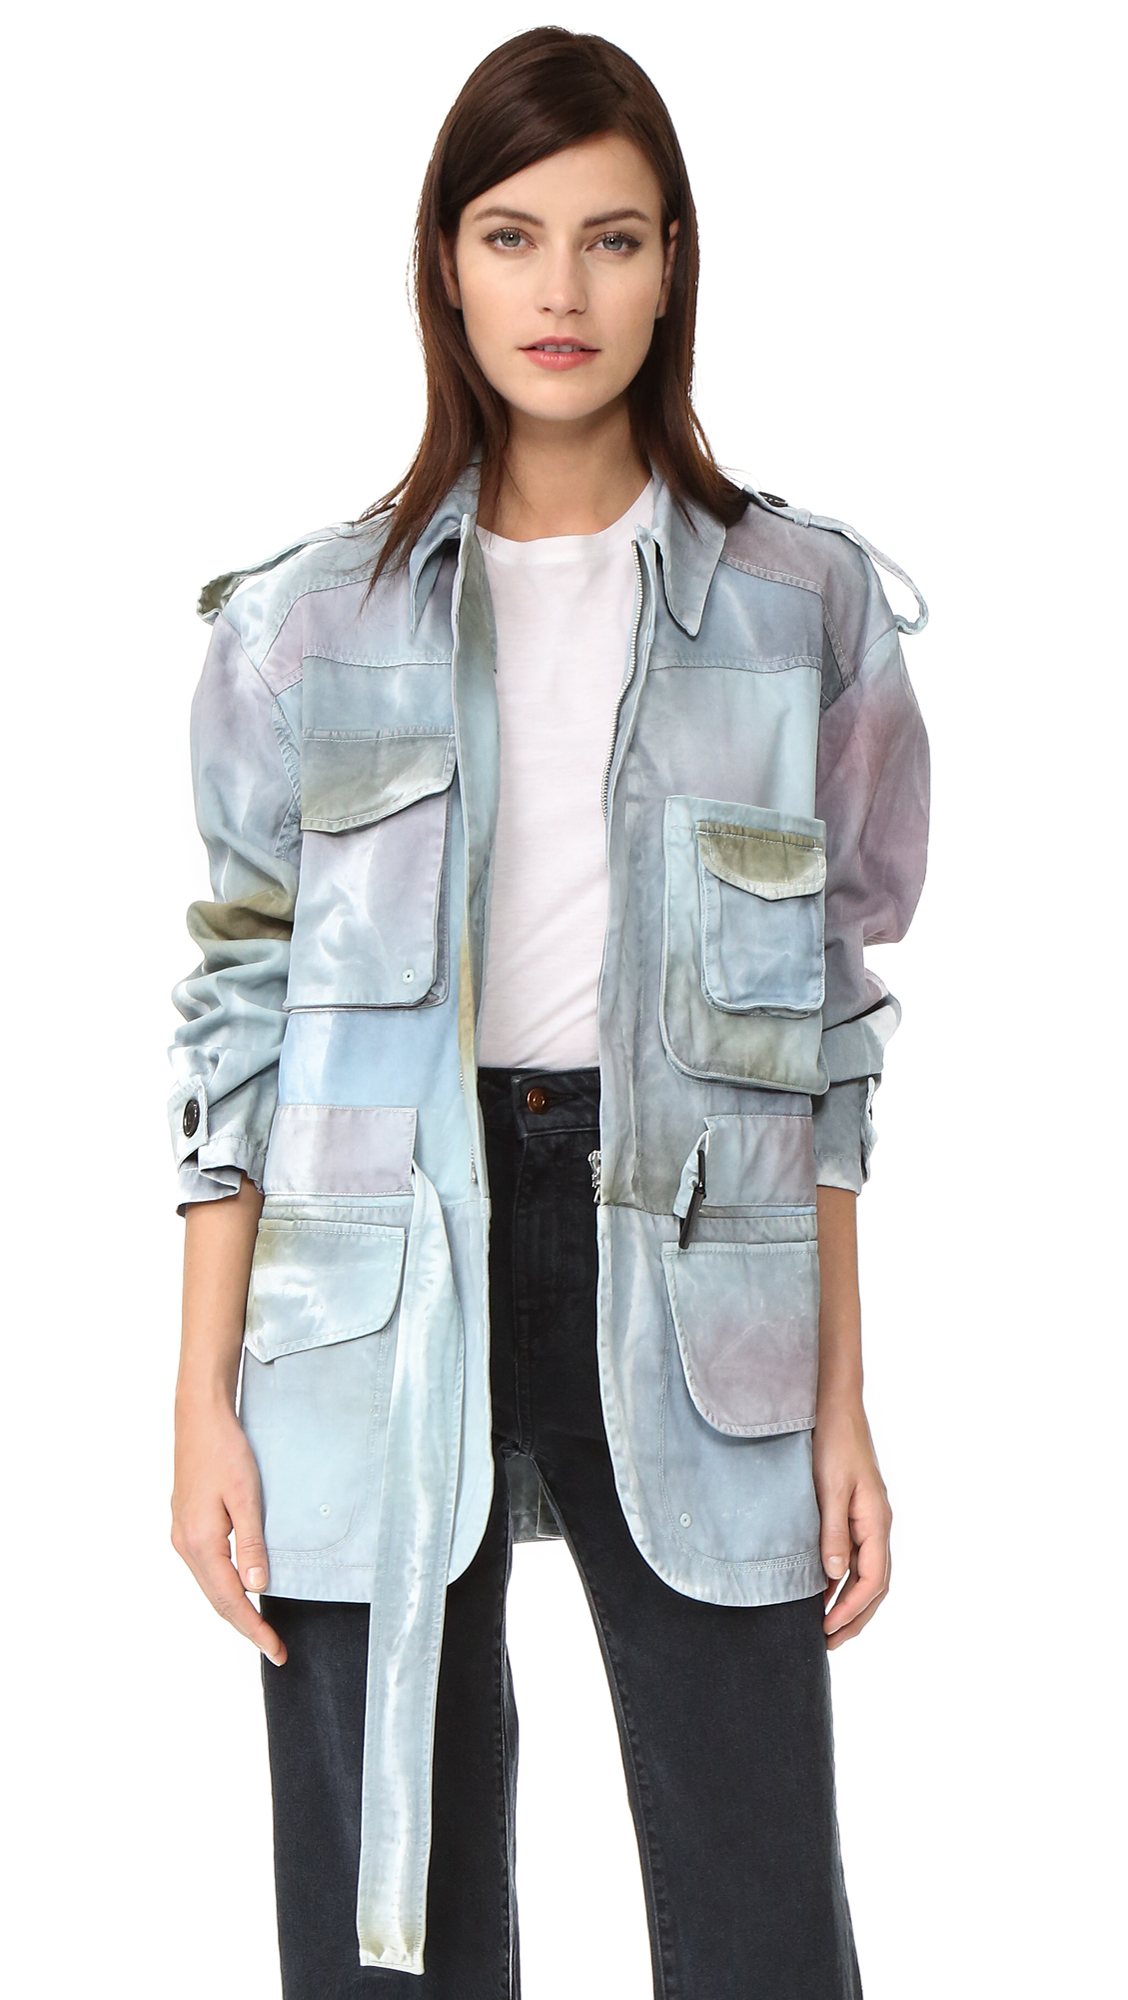 Acne Studios Liv P Jacket - Moss Green at Shopbop